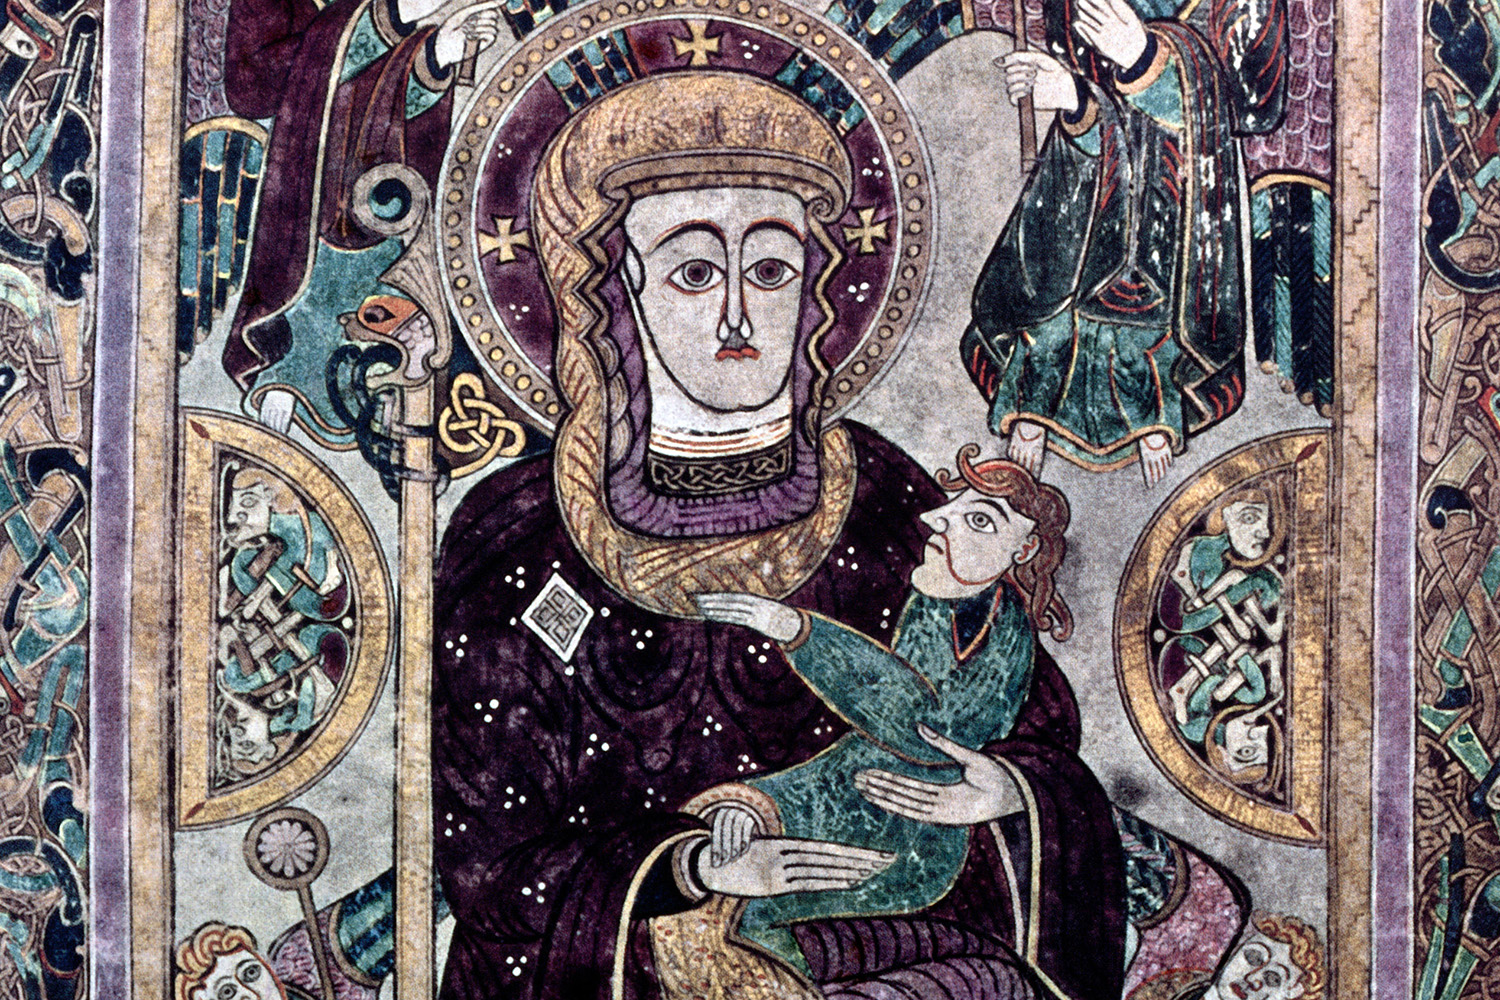 The Virgin and Child depicted in the Book of Kells, 9th century.